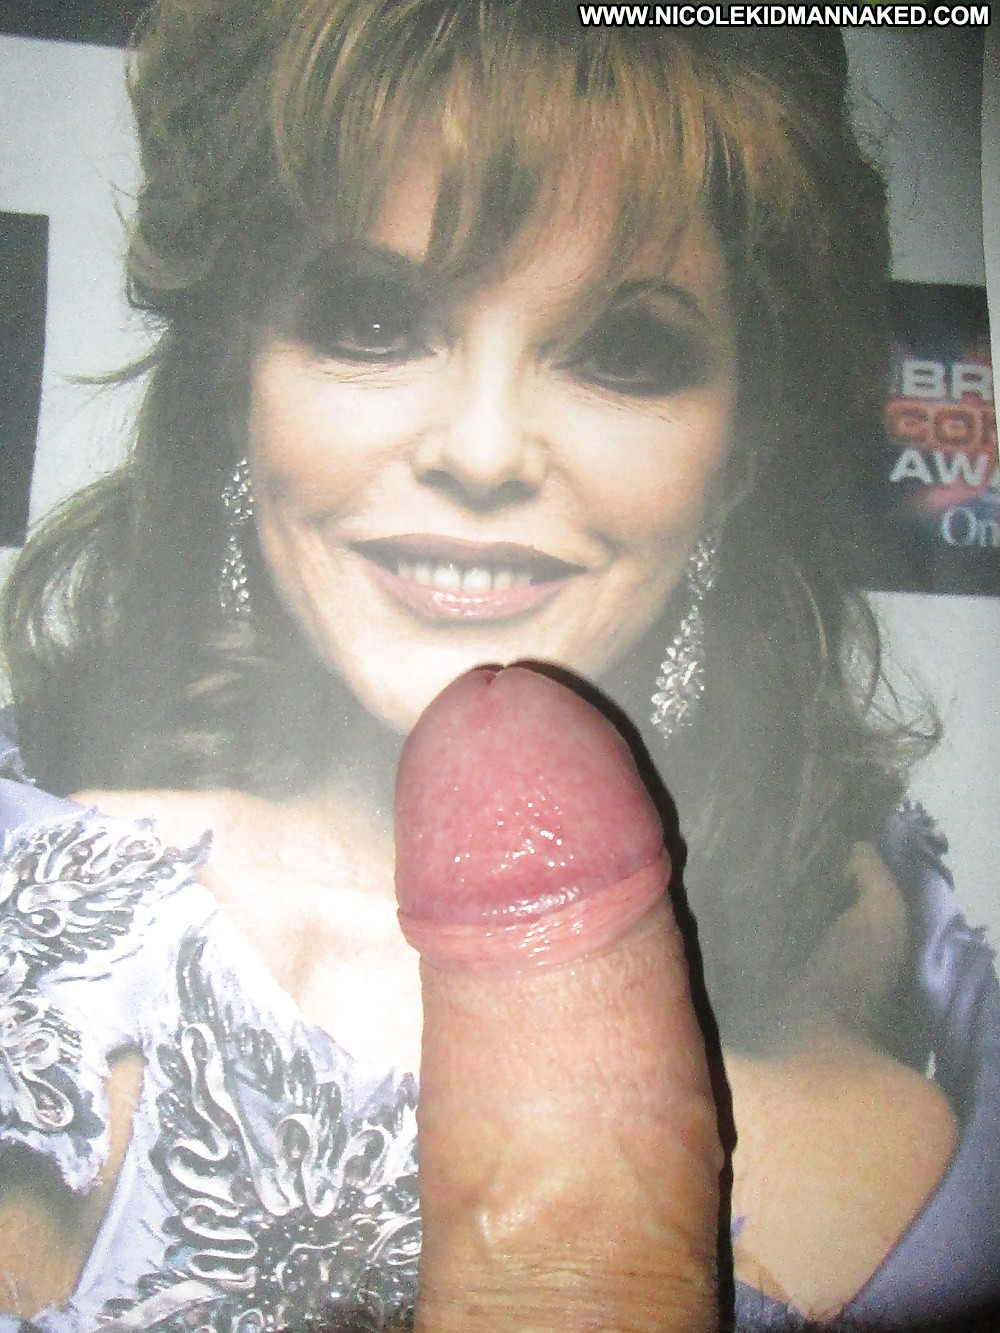 In the stud joan collins nude hd porn pics